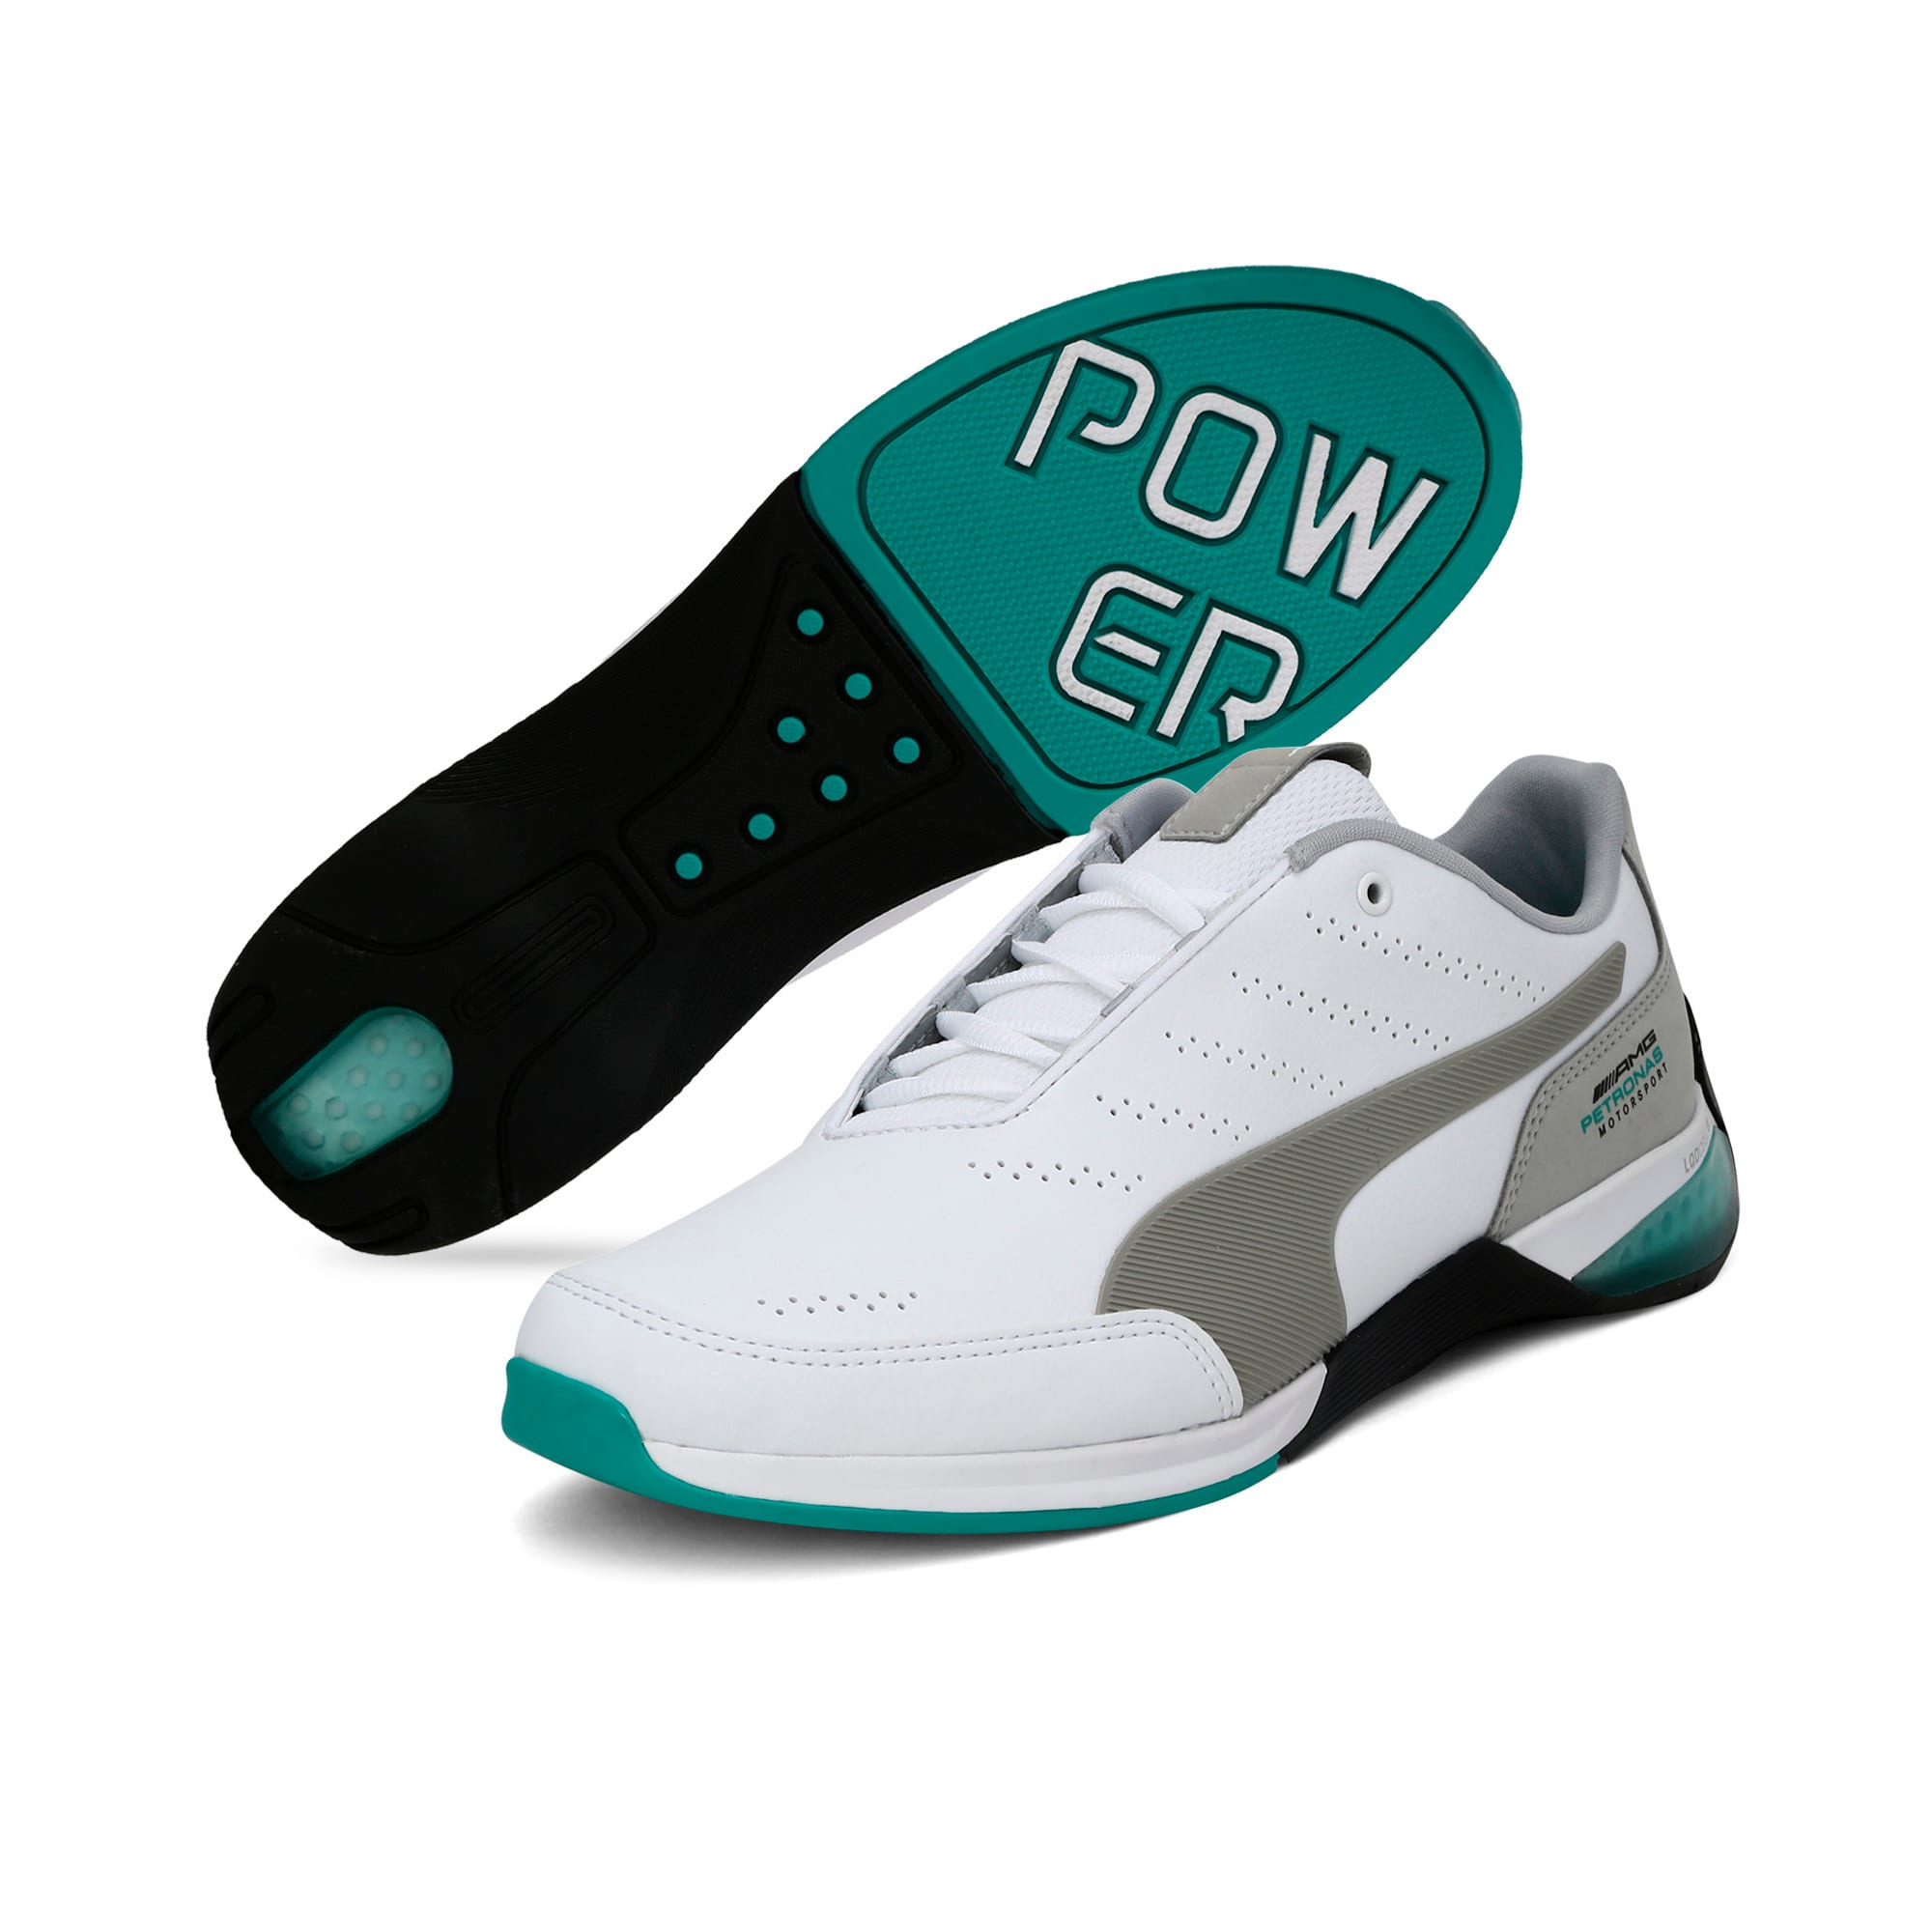 Thumbnail 4 of Mercedes AMG Petronas Motorsport Kart Cat X Trainers, Puma White-Mercedes Silver, medium-IND